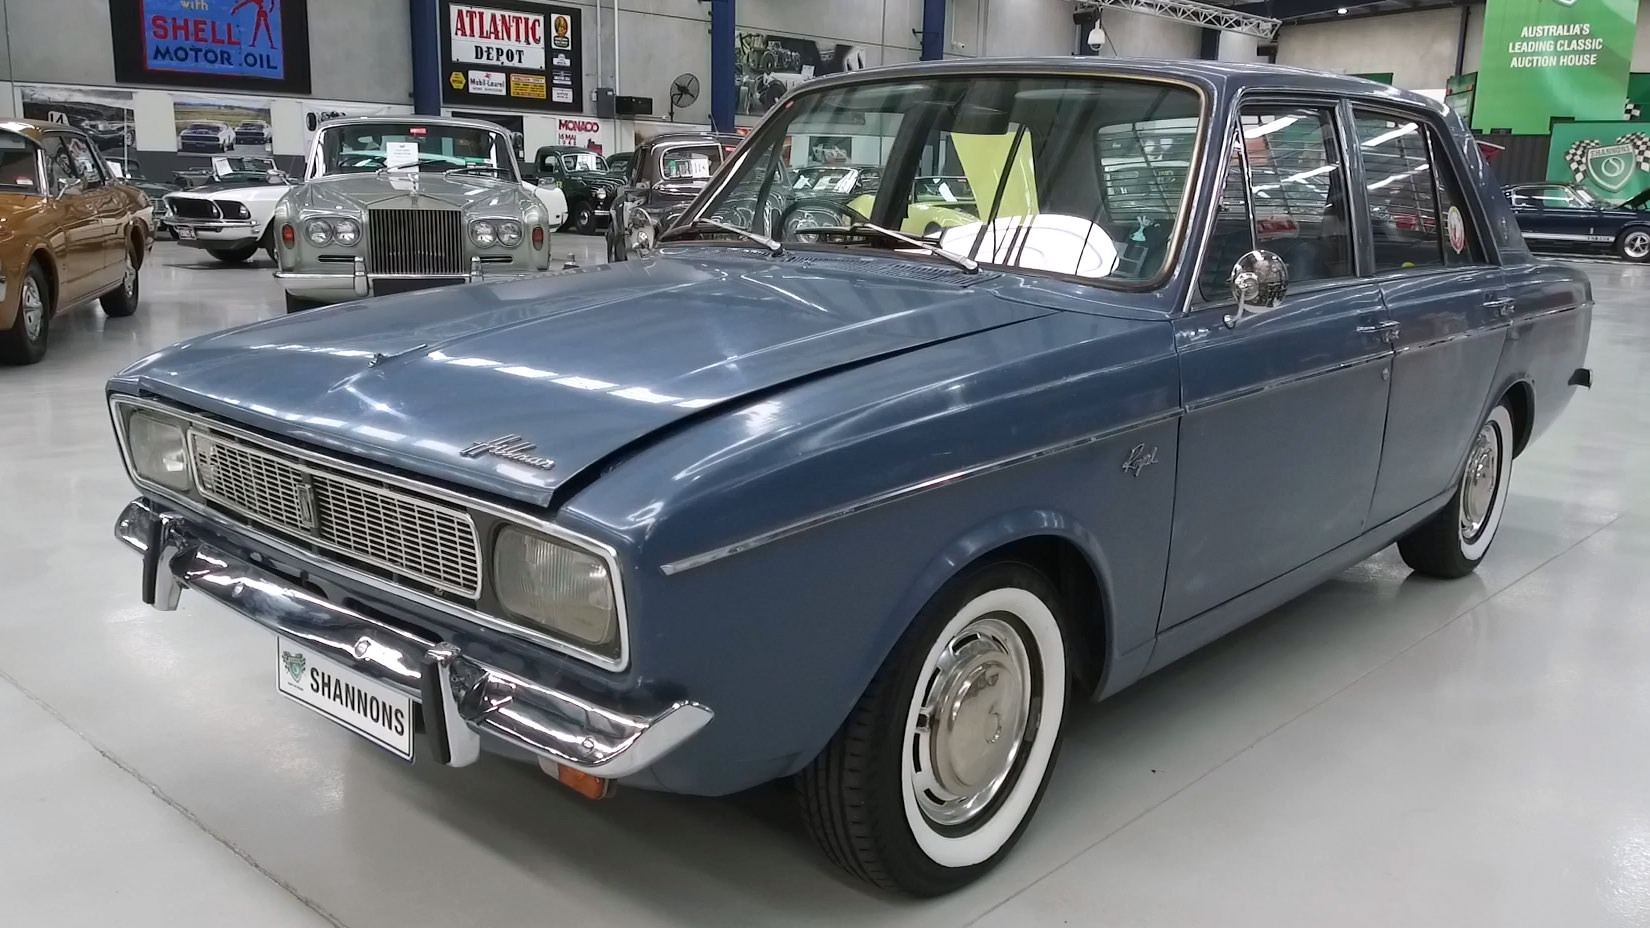 1969 Hillman Hunter Royal Saloon - 2021 Shannons Autumn Timed Online Auction